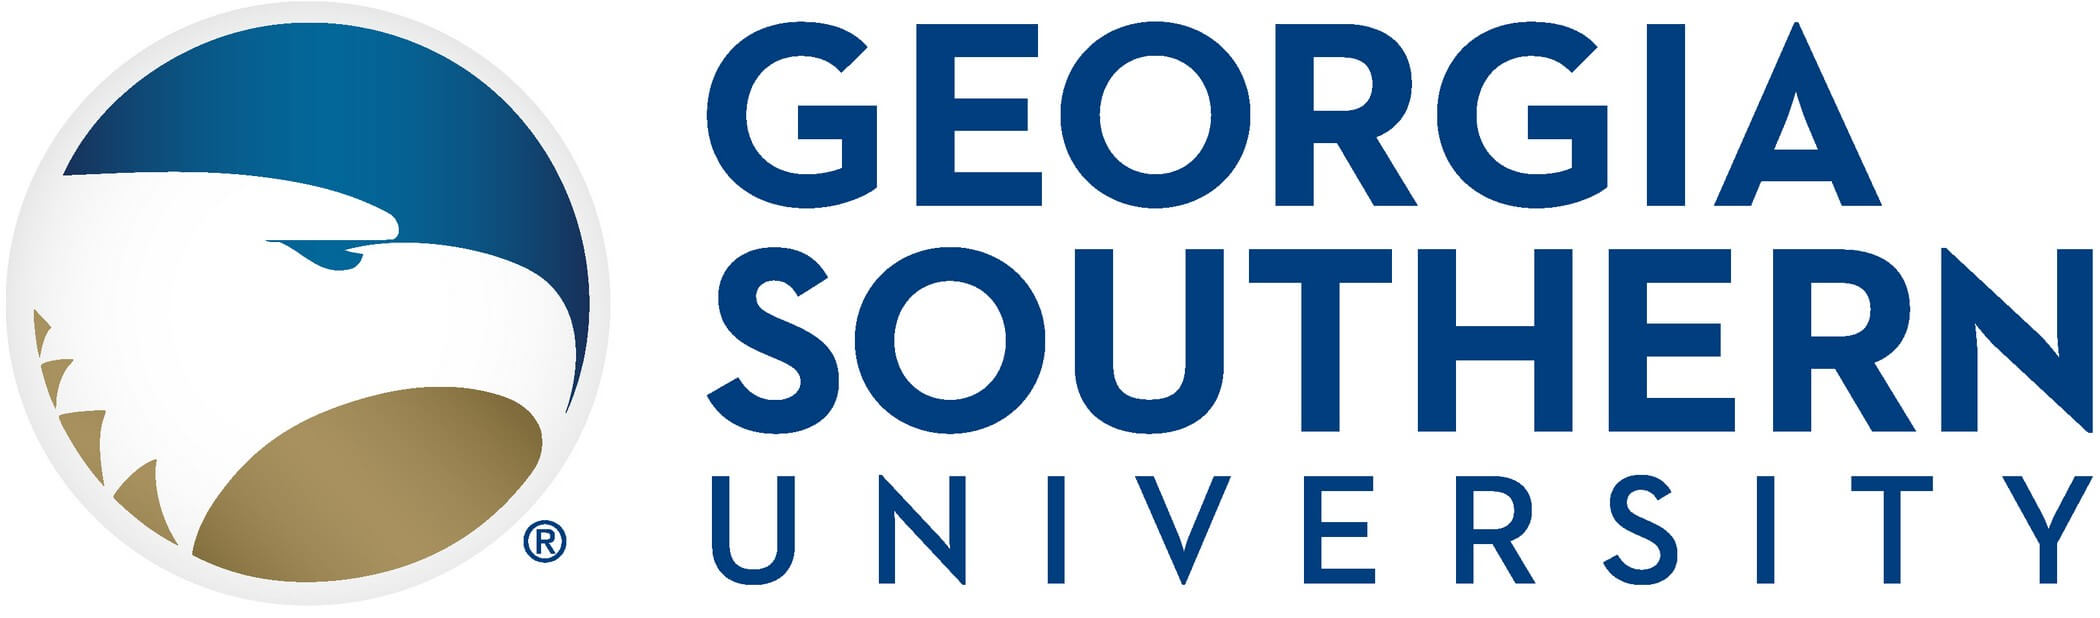 GS Georgia Southern University Logo